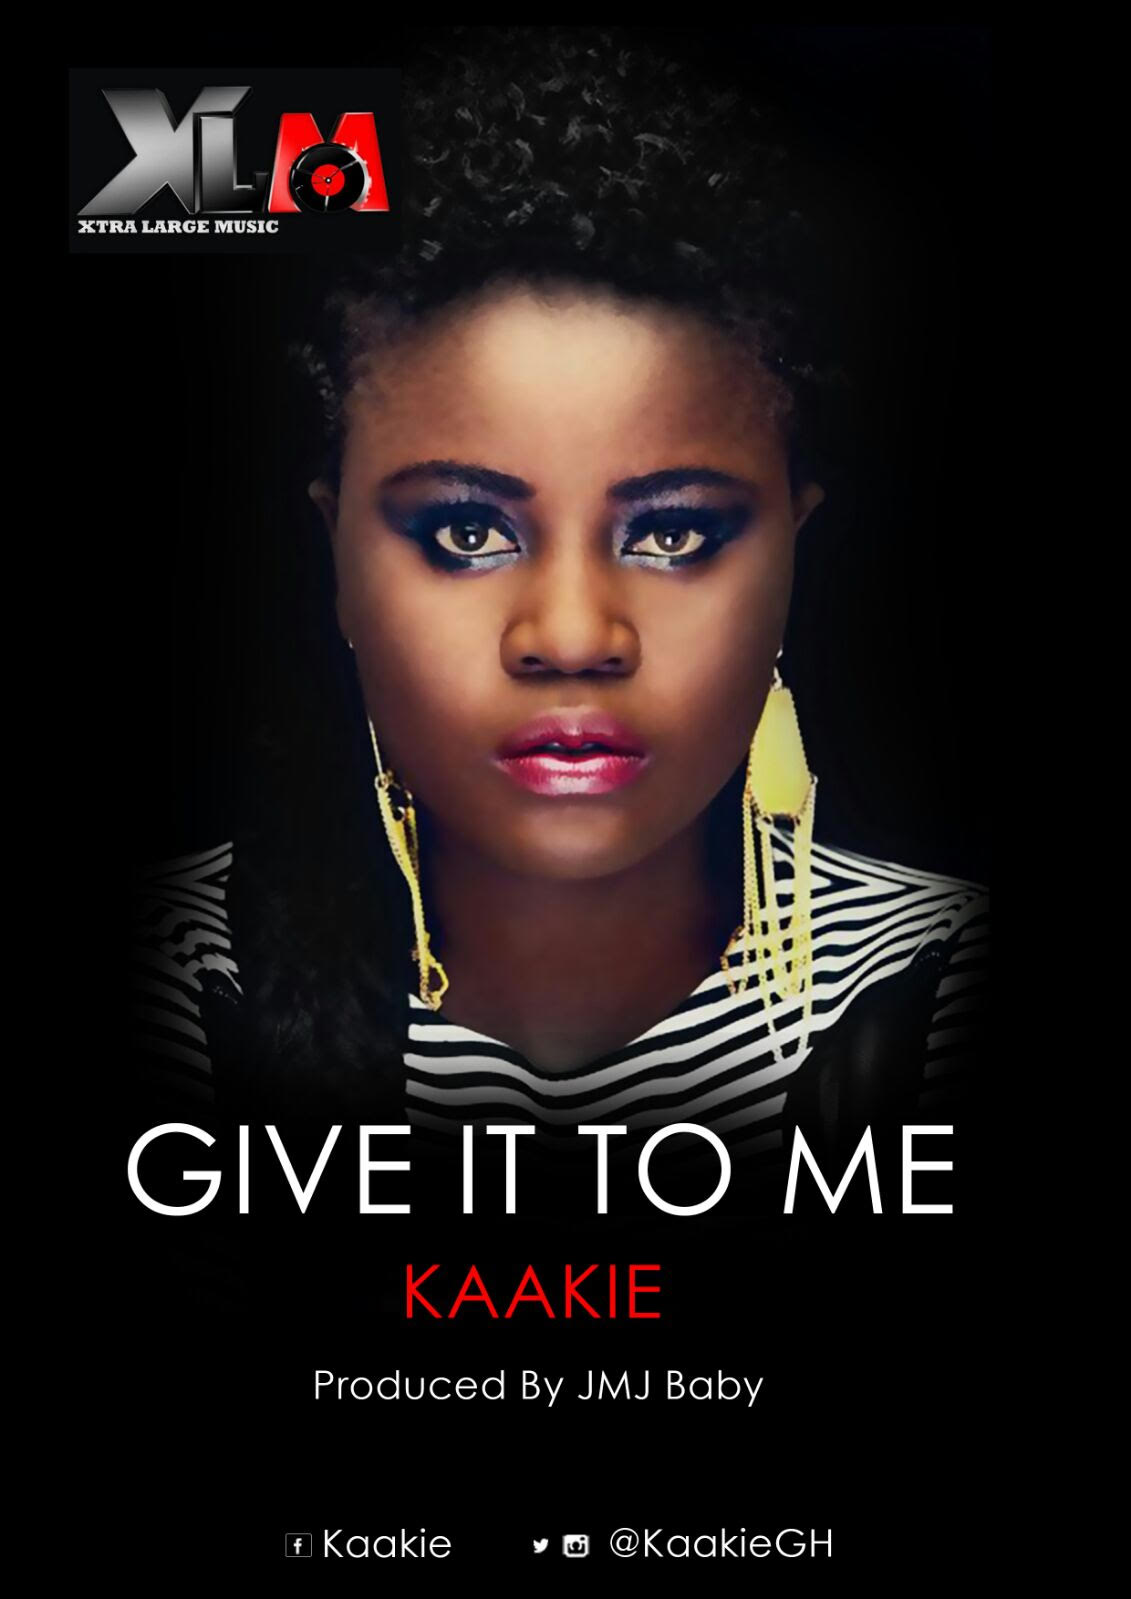 Kaakie – Give It To Me (Radio Version)(Prod By JMJ) [DOWNLOAD] Kaakie – Give It To Me (Dirty )(Prod By JMJ) [DOWNLOAD]